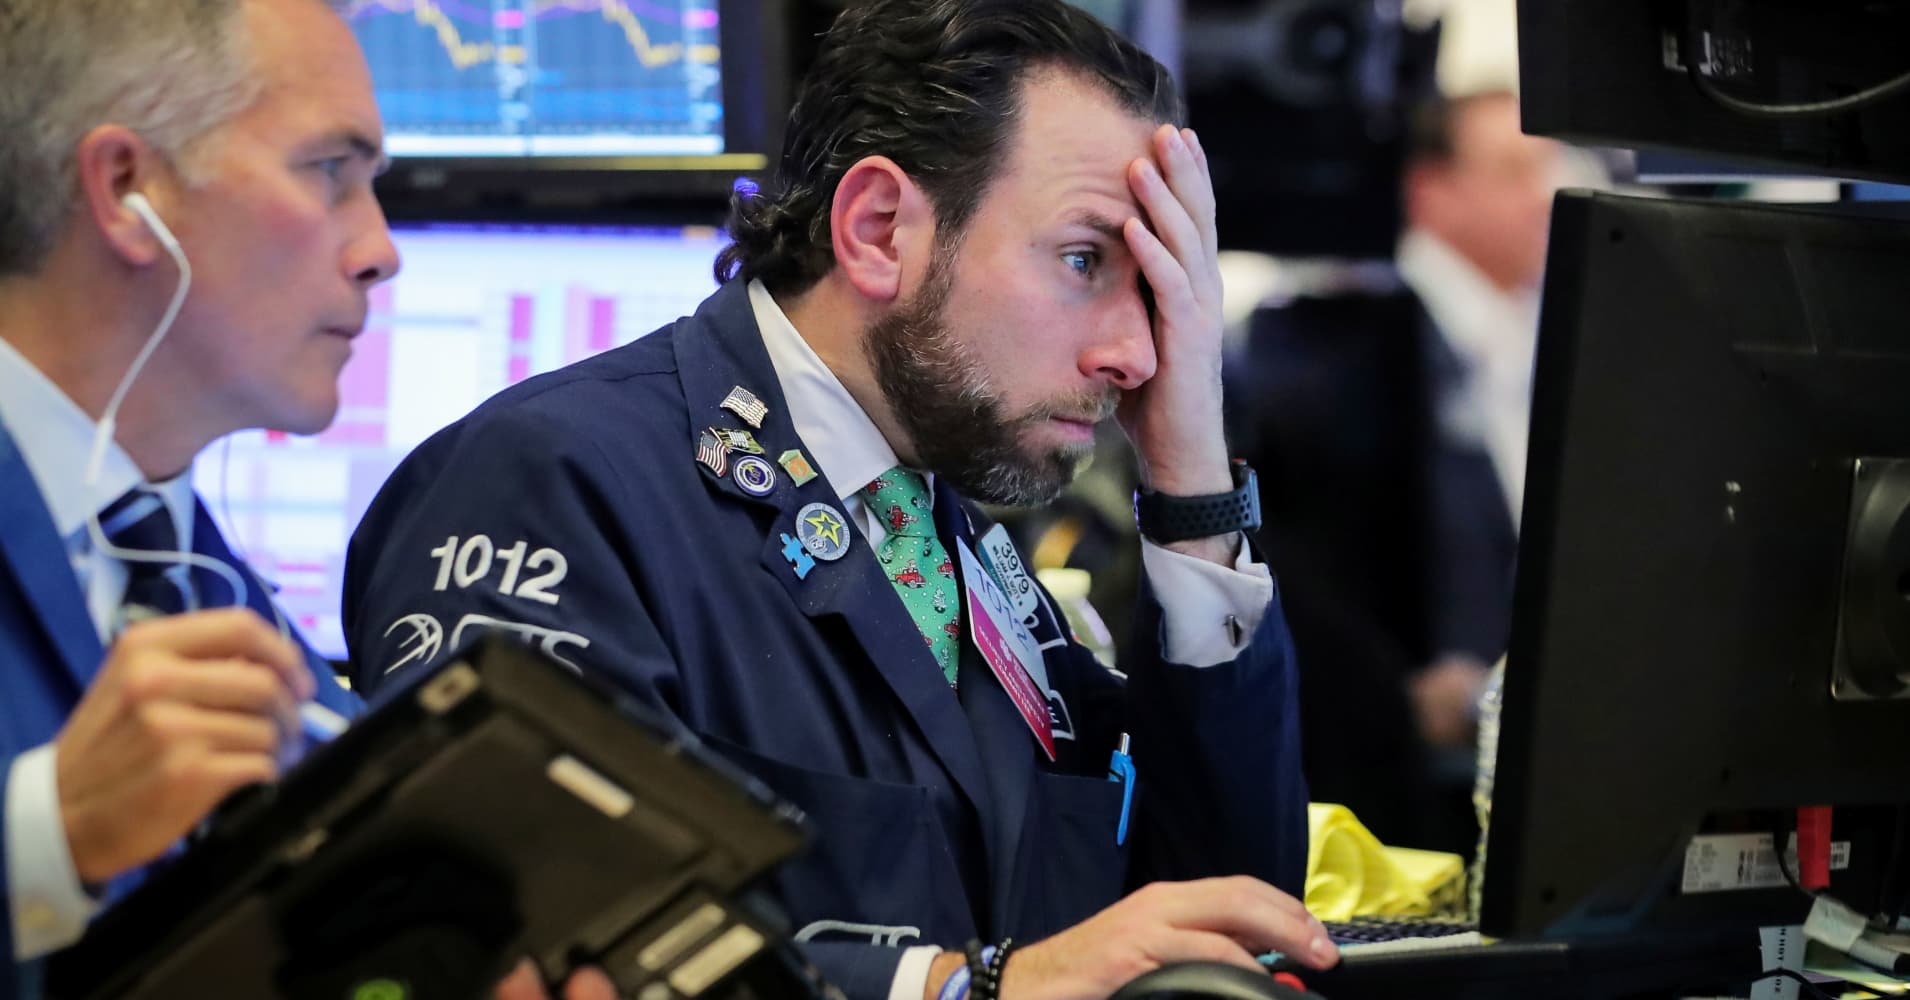 With some ugly earnings reports rolling in, investors hope the bad news is 'priced in'